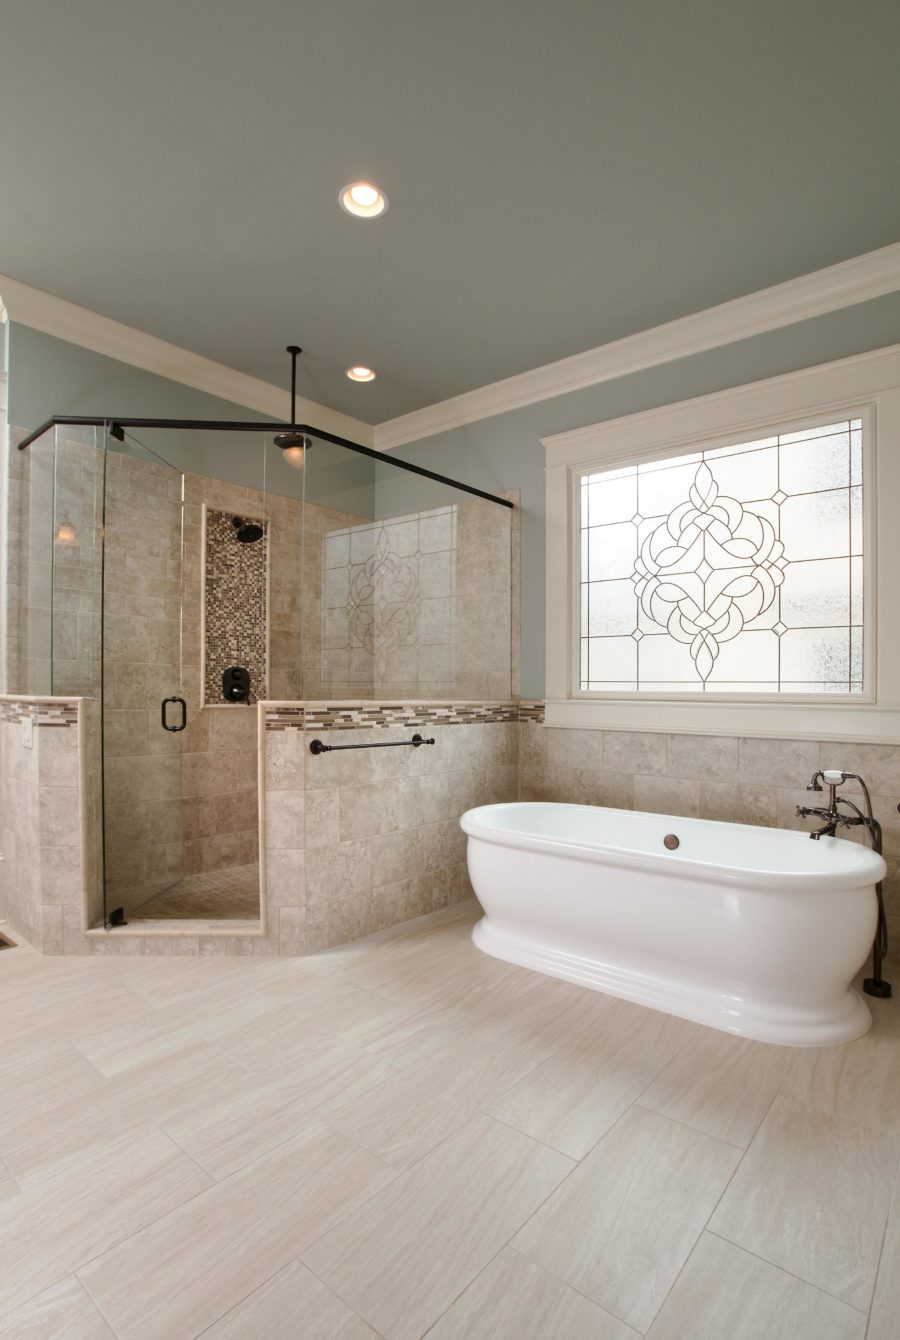 Soaking Bathtub in Spacious bathroom